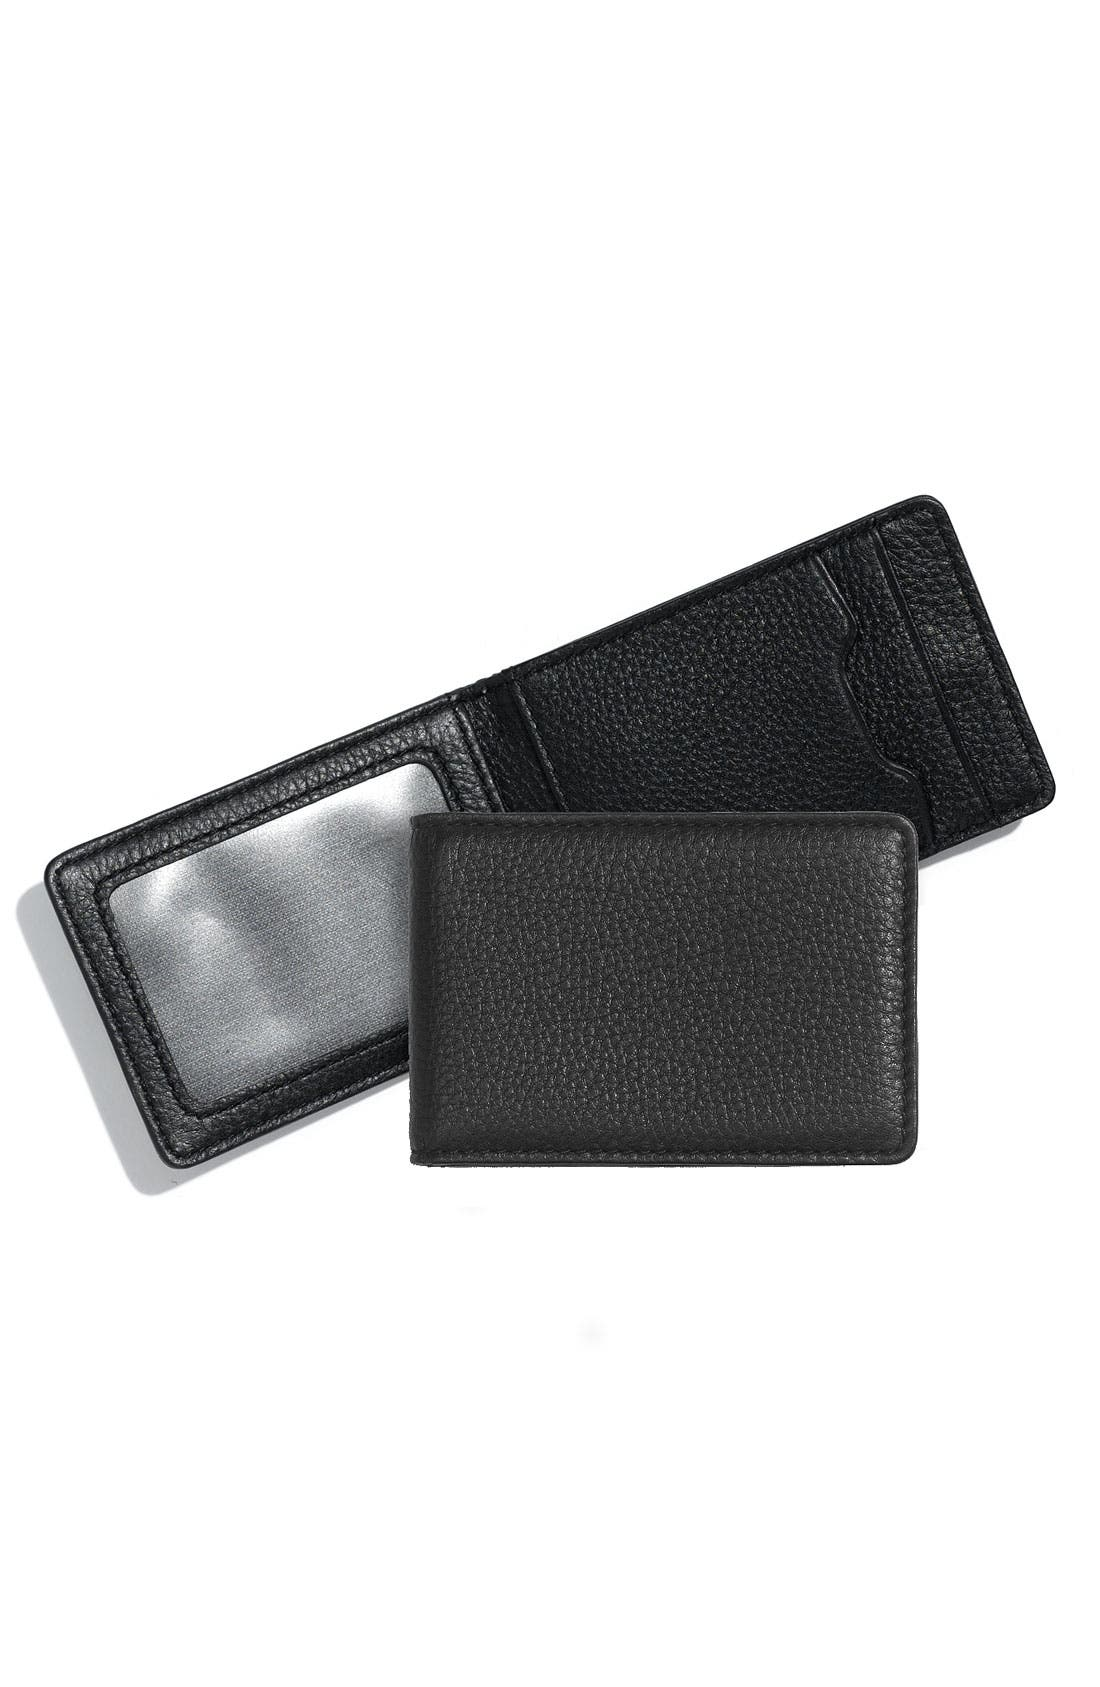 Main Image - Bosca Leather ID Wallet